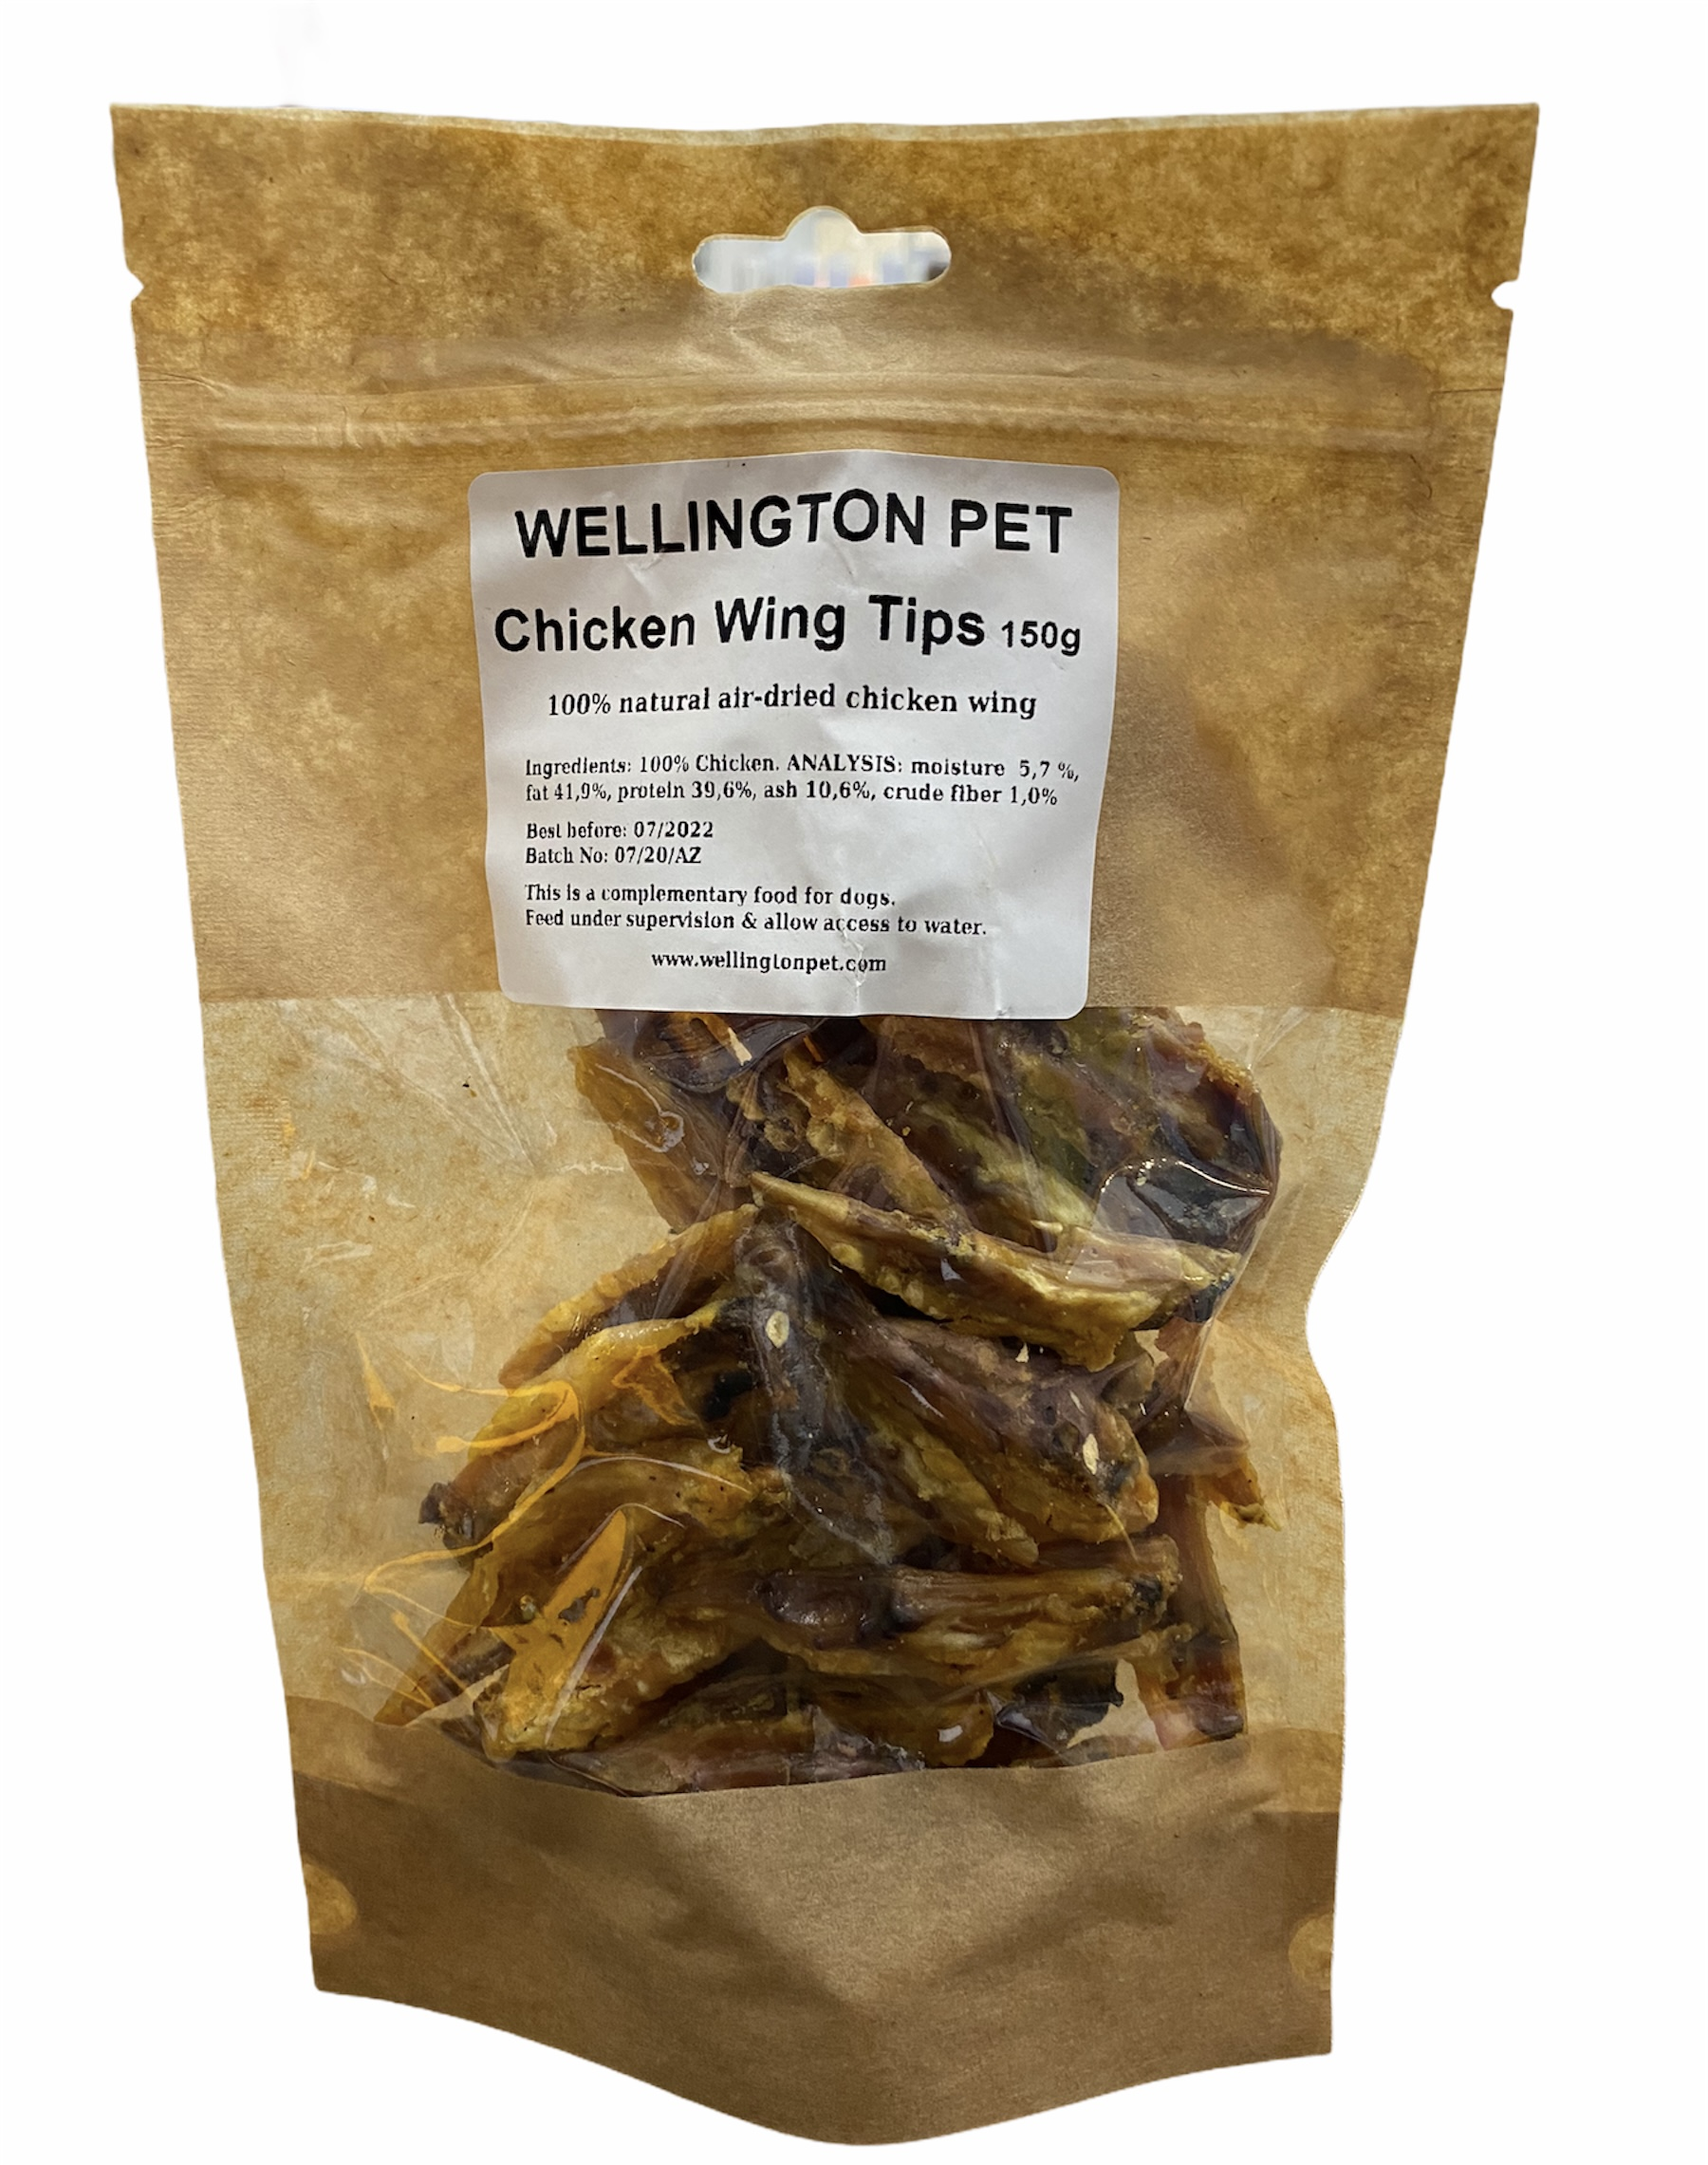 Wellington Chicken Wing Tips 150g Bag